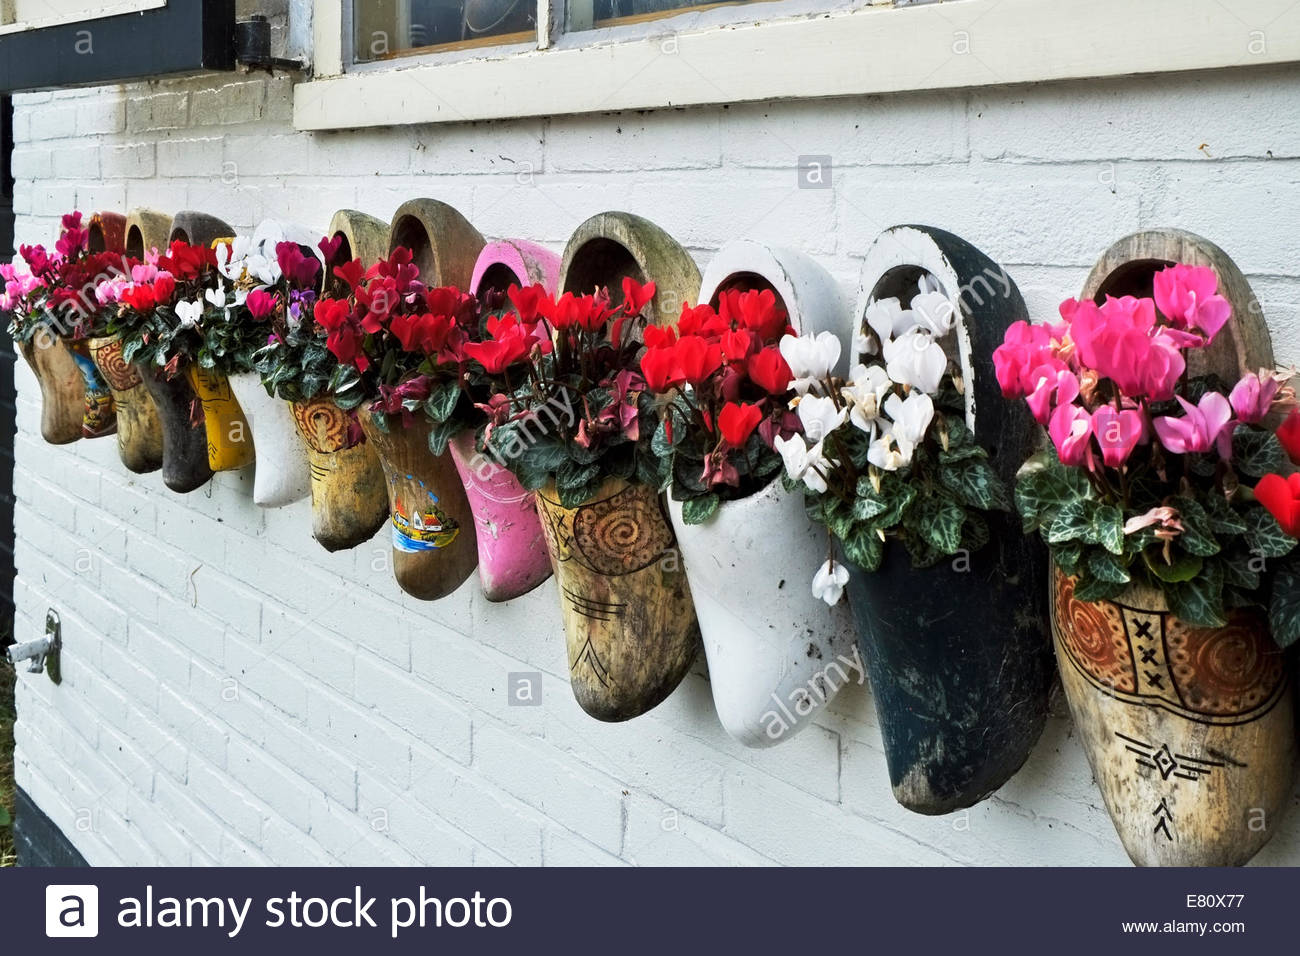 Wooden shoes used as flower pots adorn the wall of a shop on the Dutch island of Marken. - Stock Image